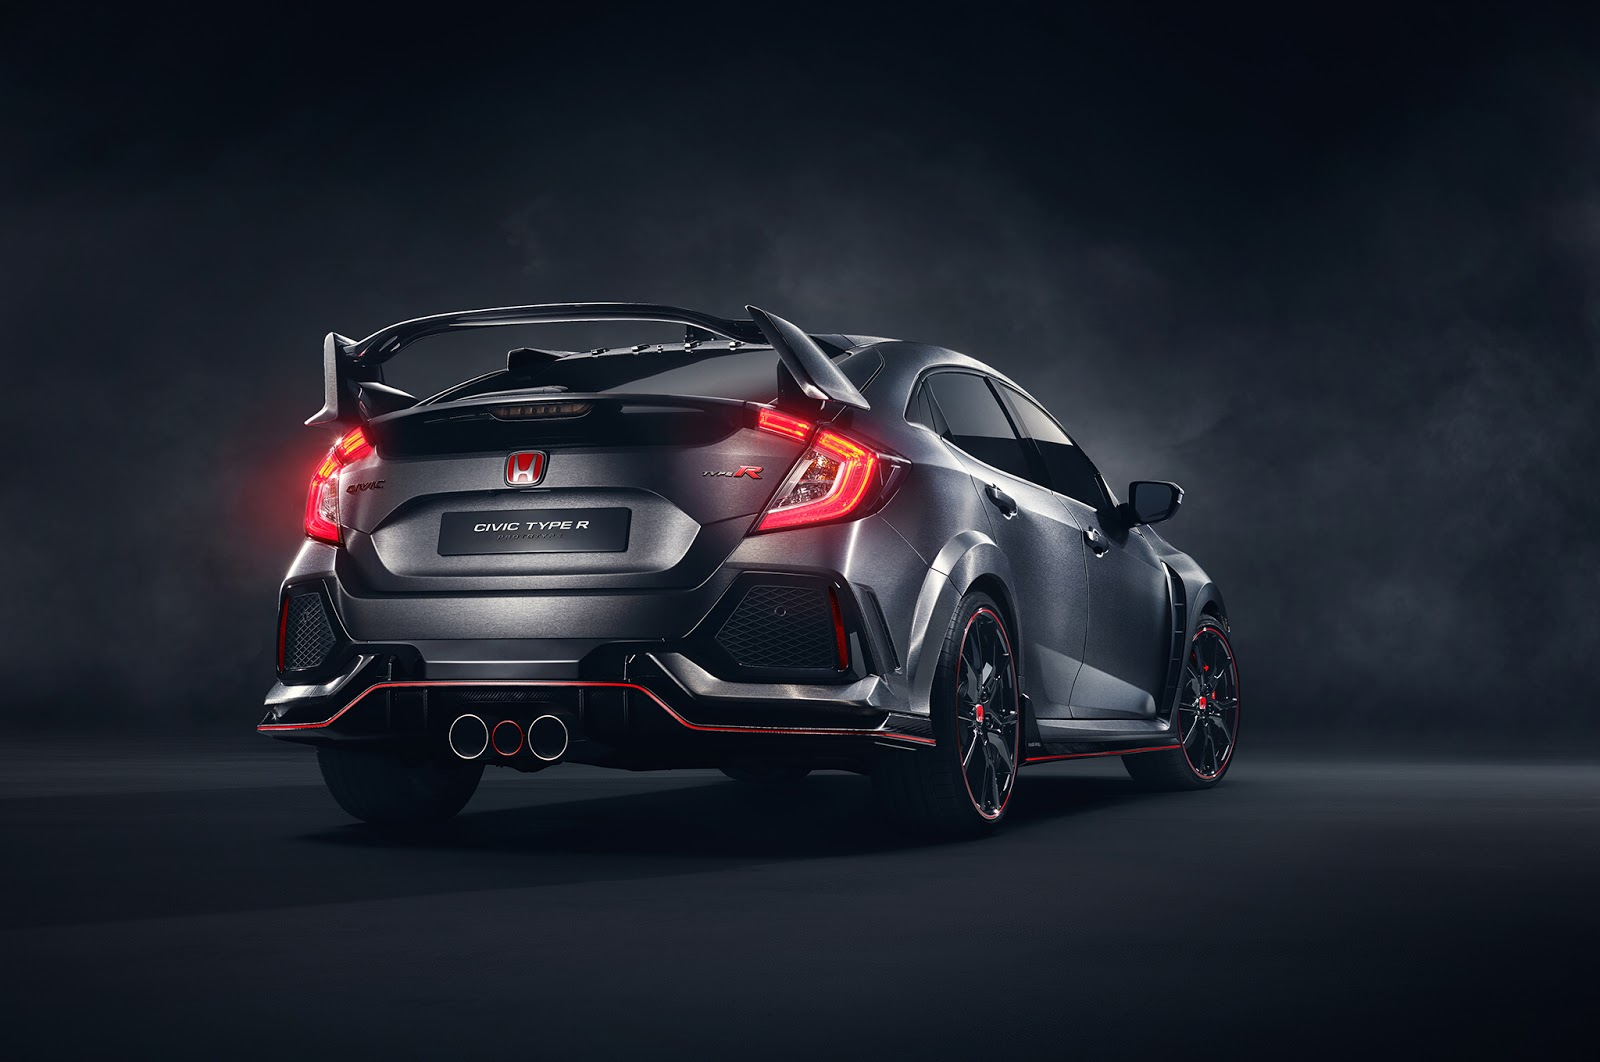 Compared to the regular Civic Hatch, the range-topper sports a ...